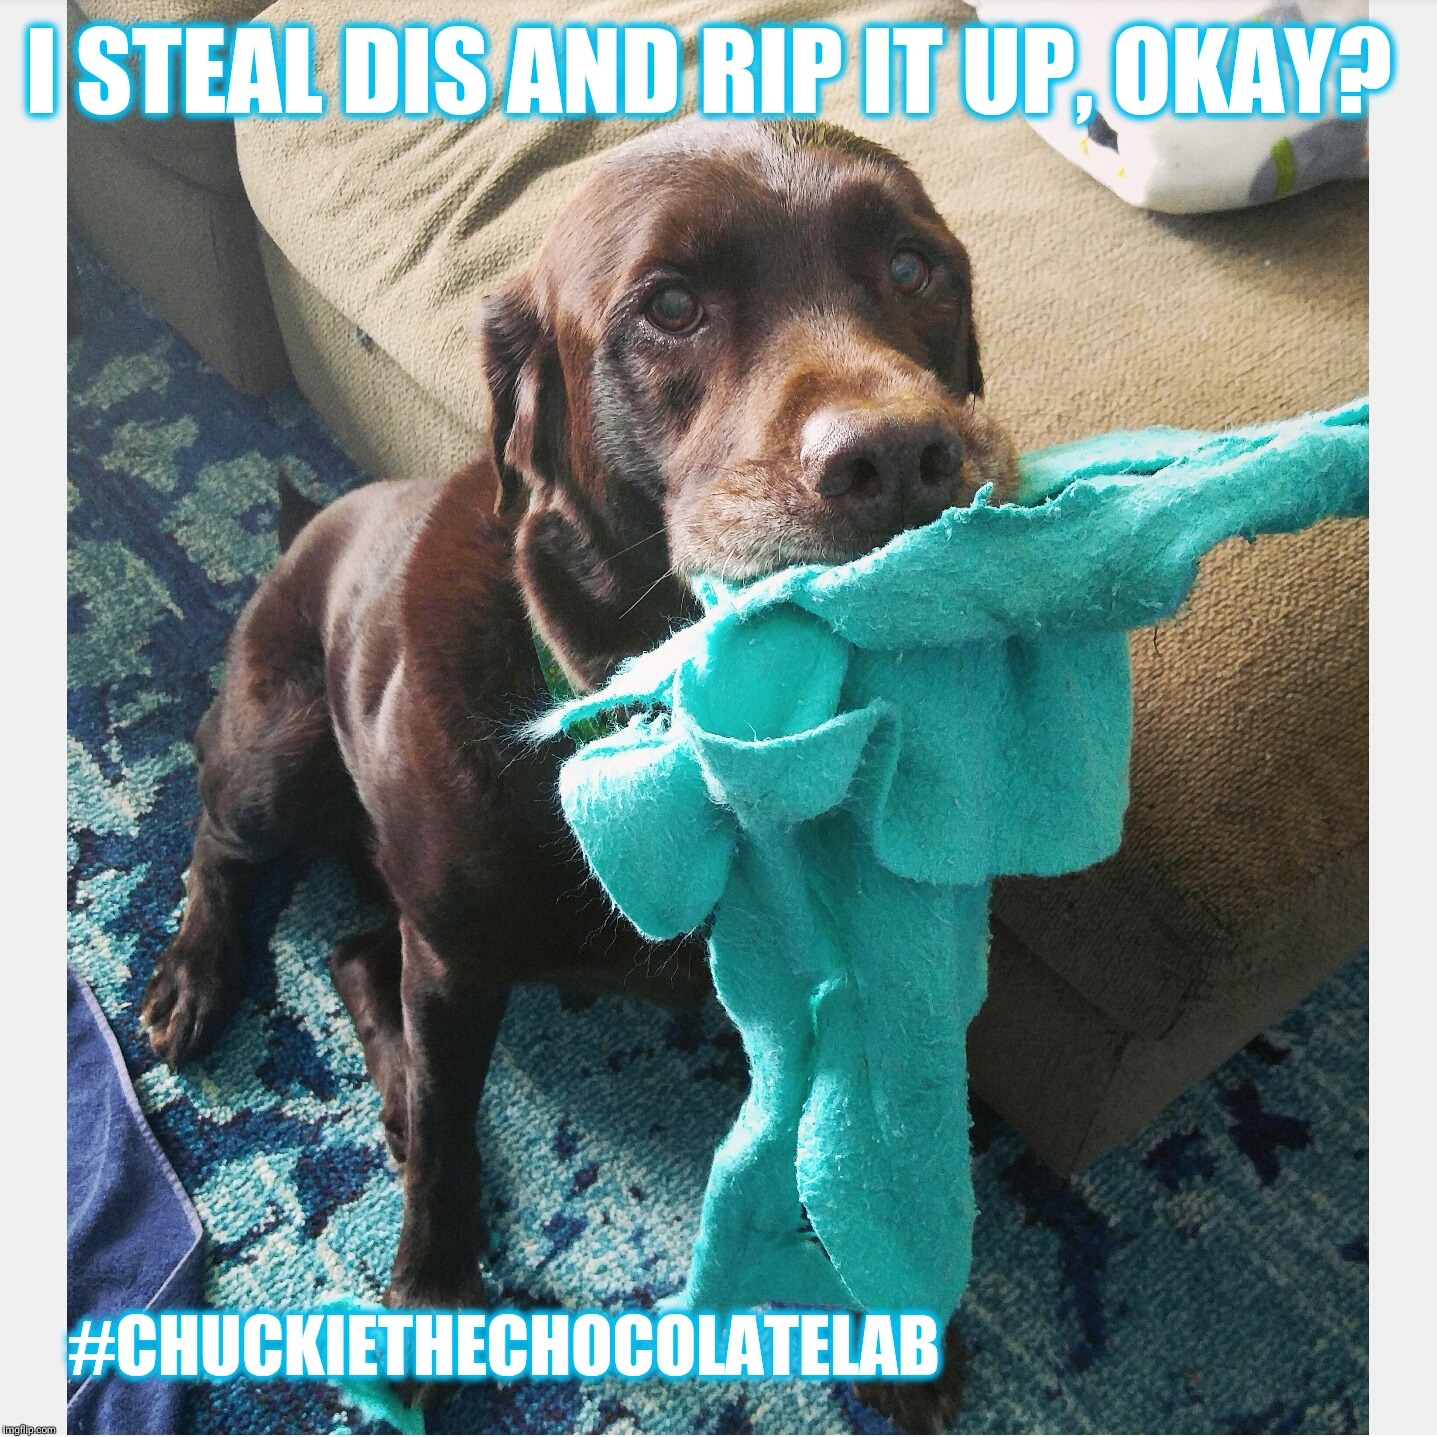 I steal dis |  I STEAL DIS AND RIP IT UP, OKAY? #CHUCKIETHECHOCOLATELAB | image tagged in chuckie the chocolate lab teamchuckie,i steal dis,funny,dogs,cute,memes | made w/ Imgflip meme maker